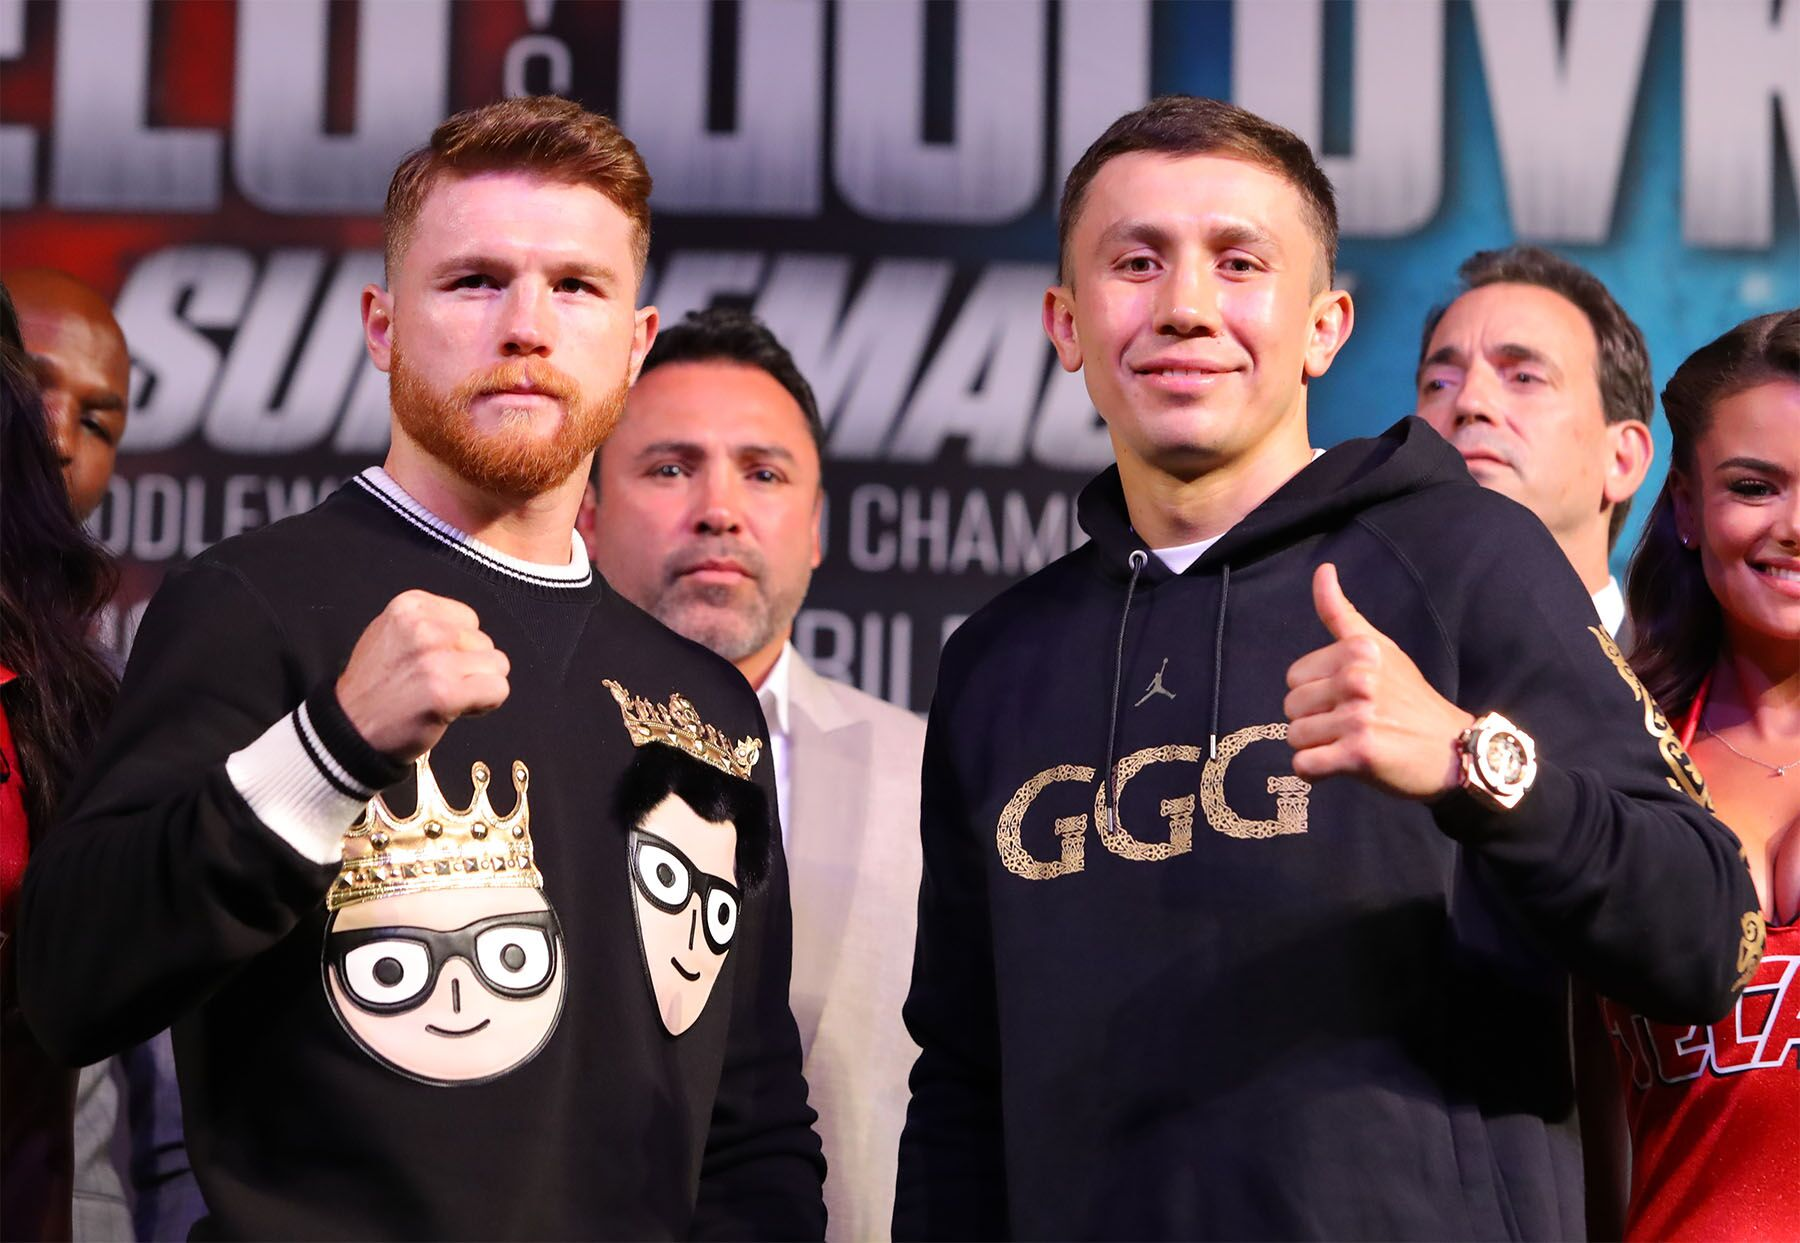 Where is GGG from? Gennady Golovkin's Nationality, Hometown